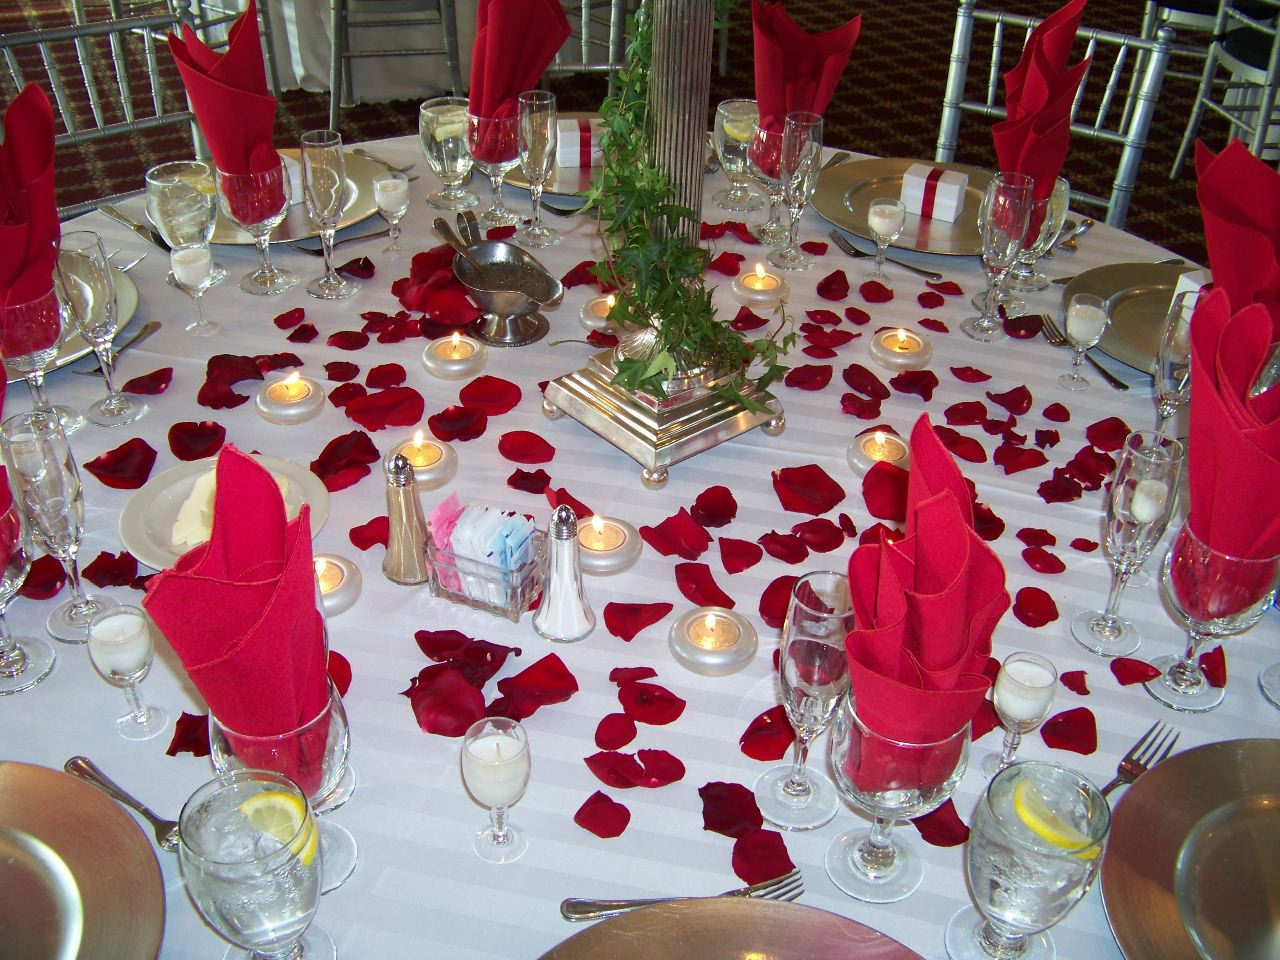 Home decor tips wedding reception decorations with balloons for Wedding decorations home